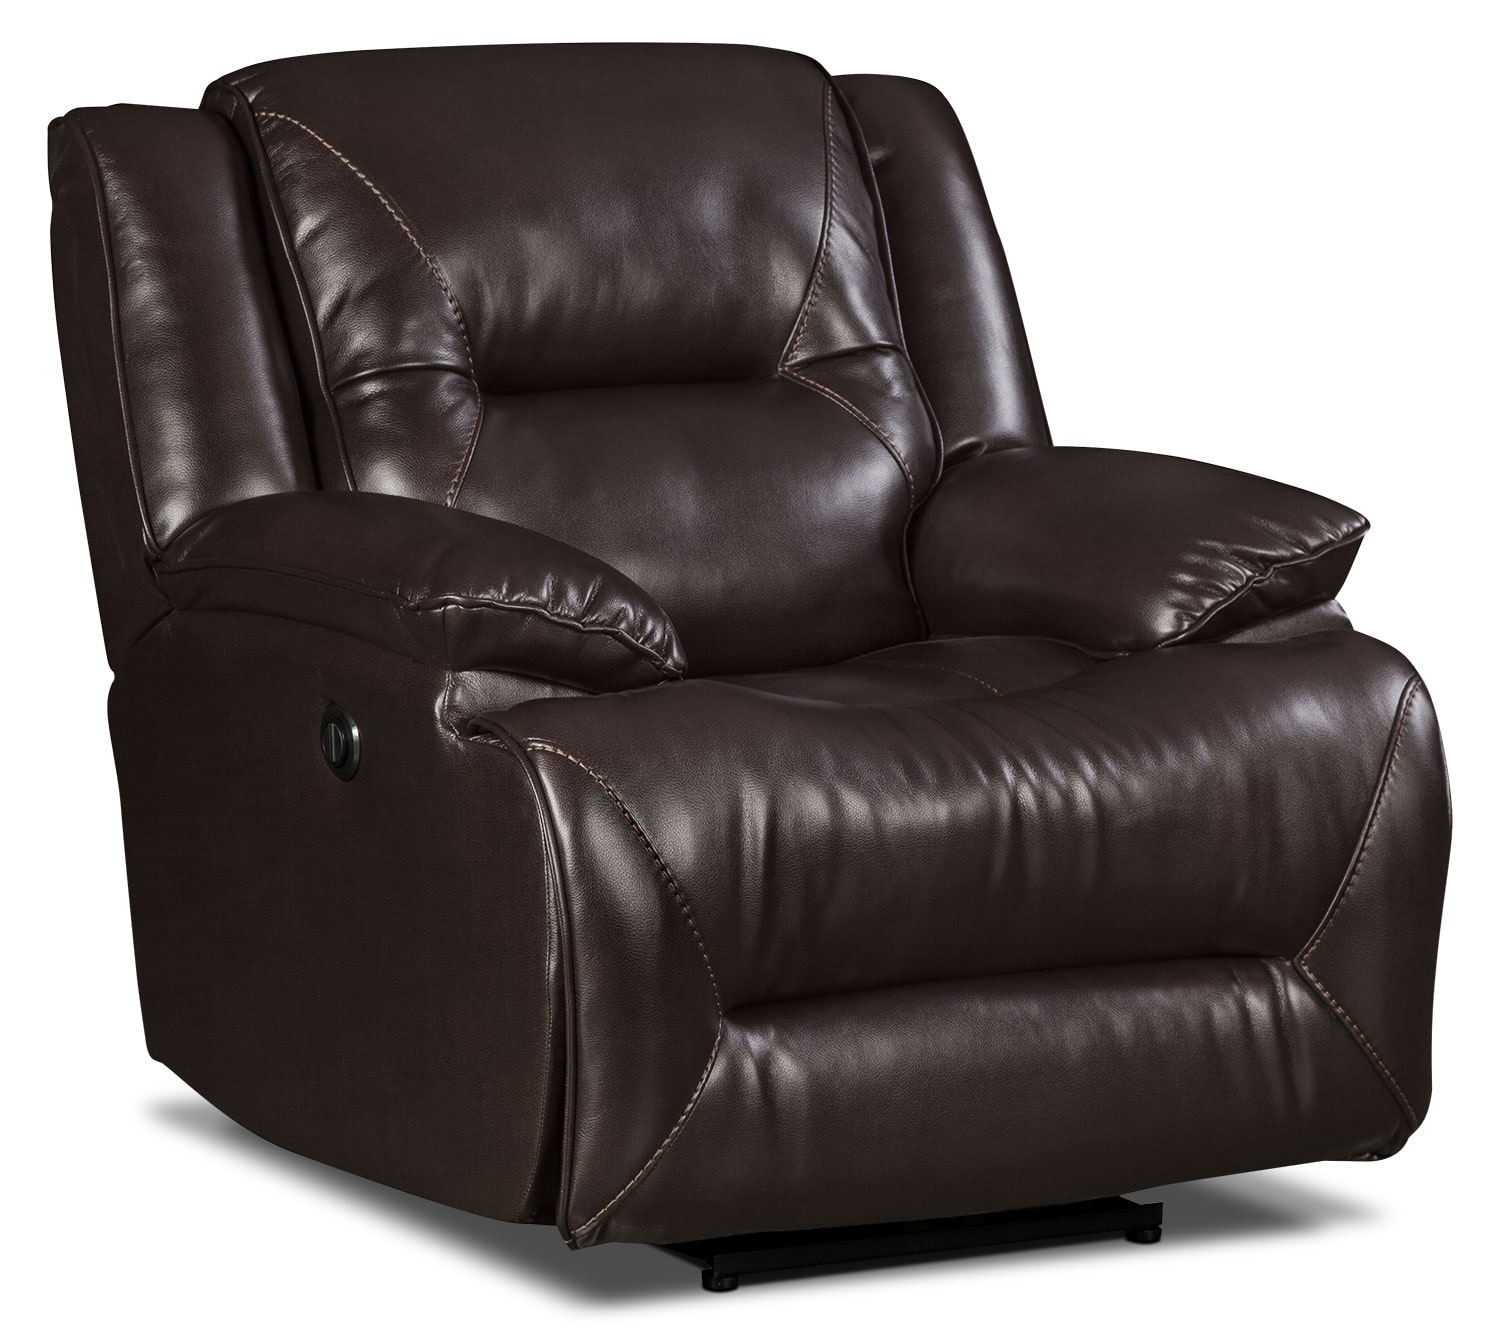 Lancer Leather-Look Fabric Power Reclining Chair – Brown